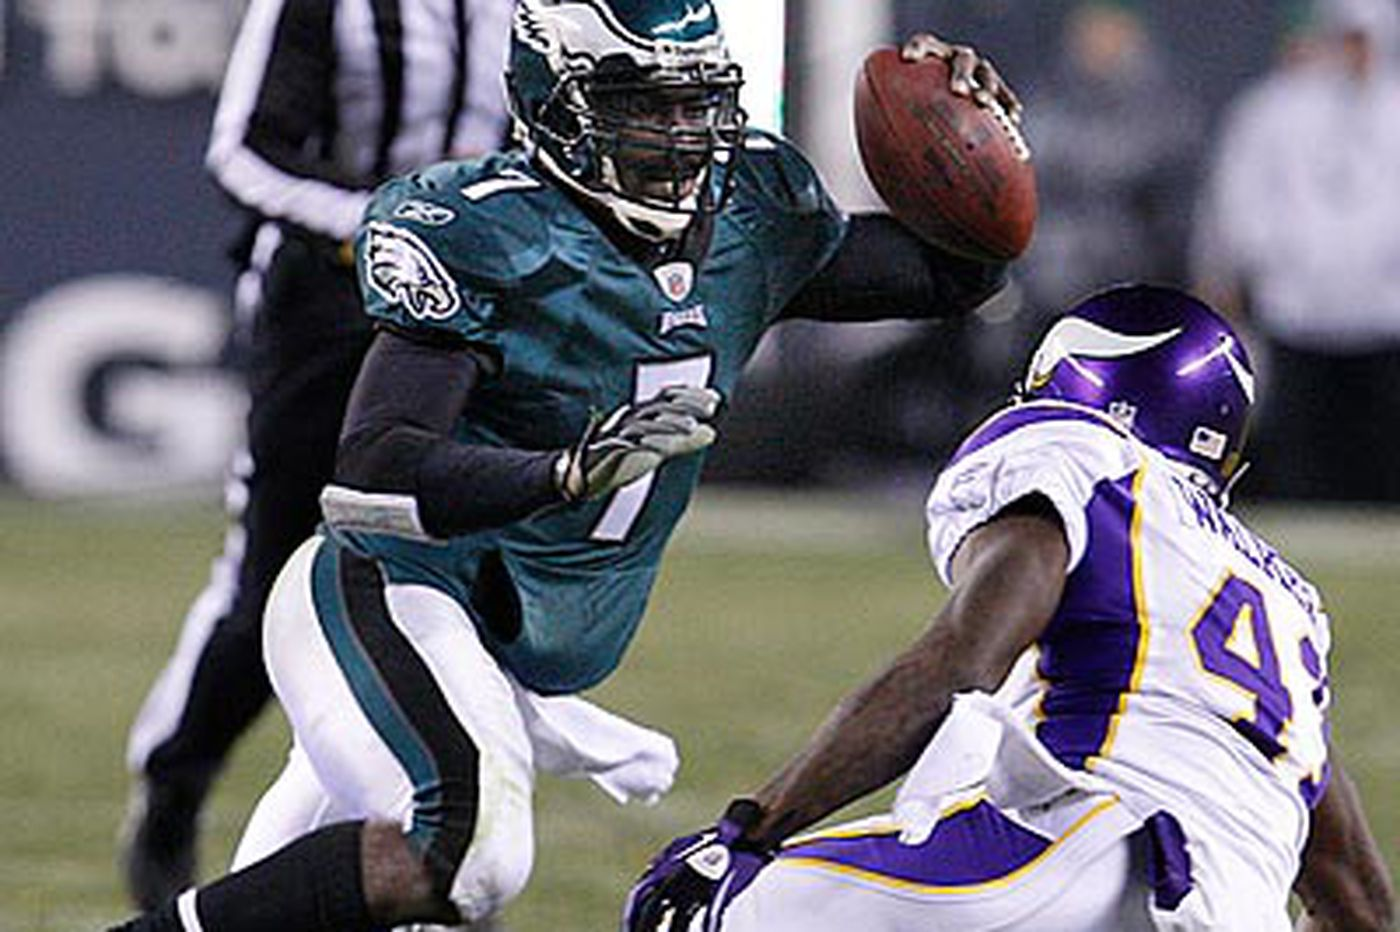 Eagles Rewind: Vikings' tricky blitz gave Vick fits